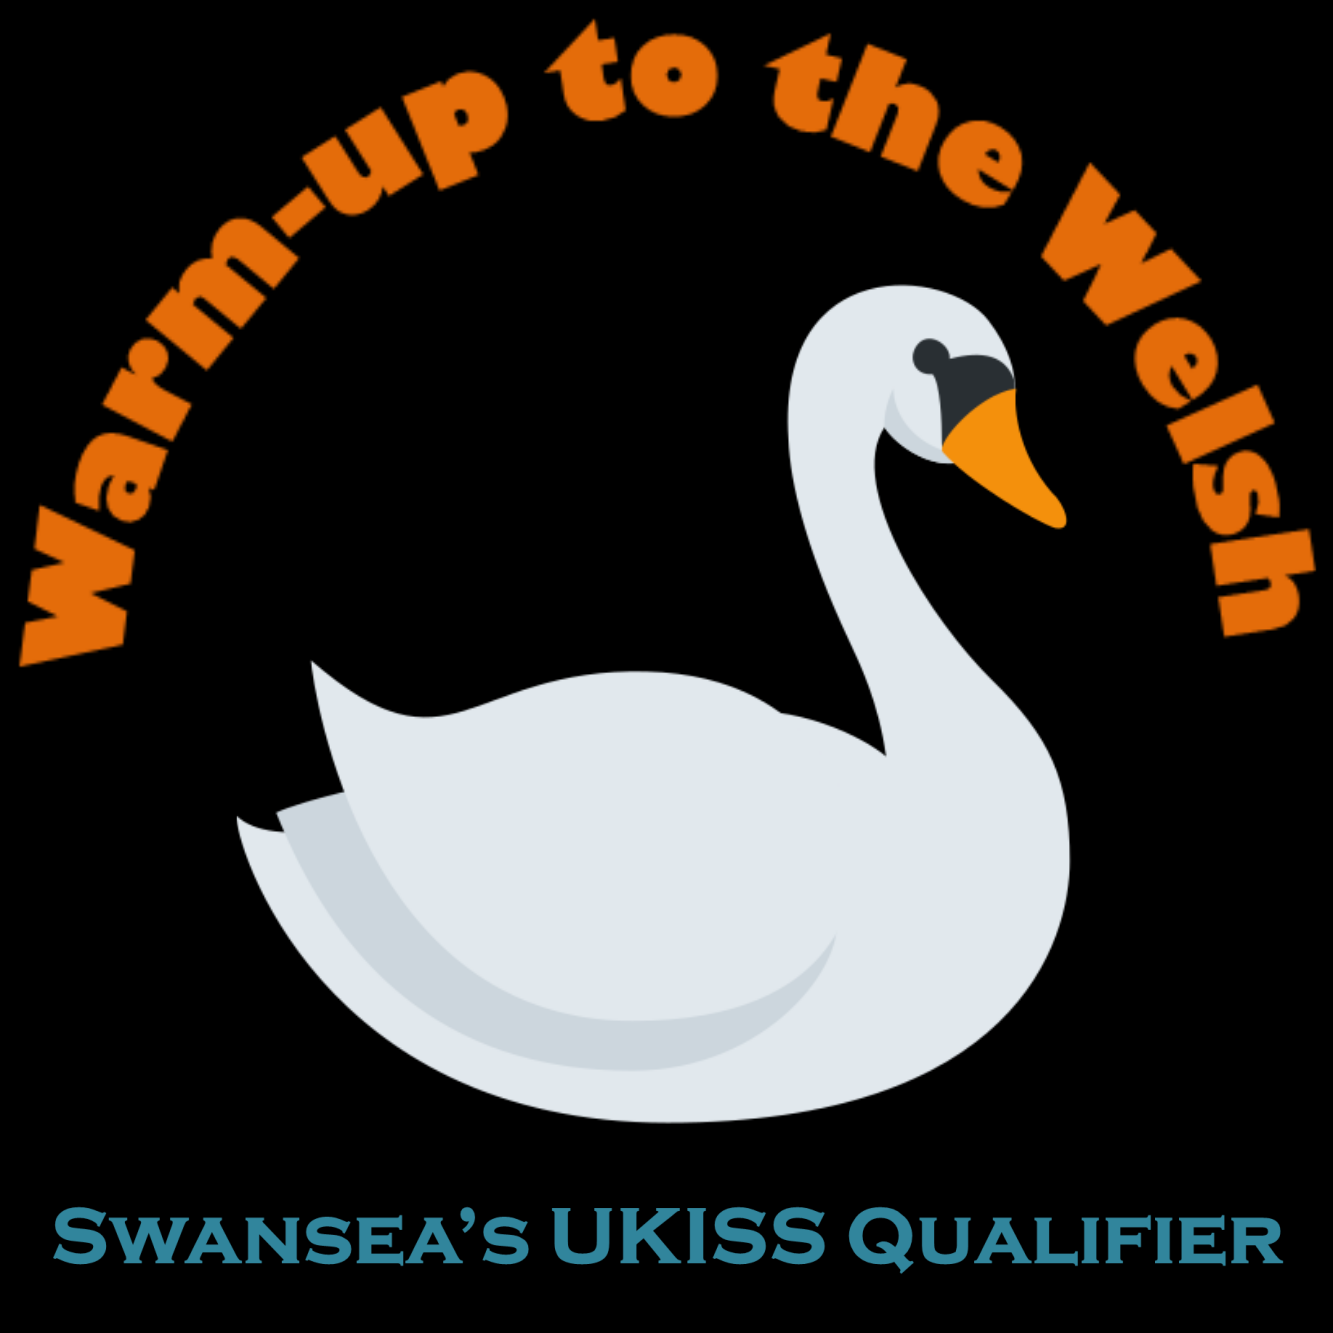 Warm-up to the Welsh - Swansea - UKISS Qualifier